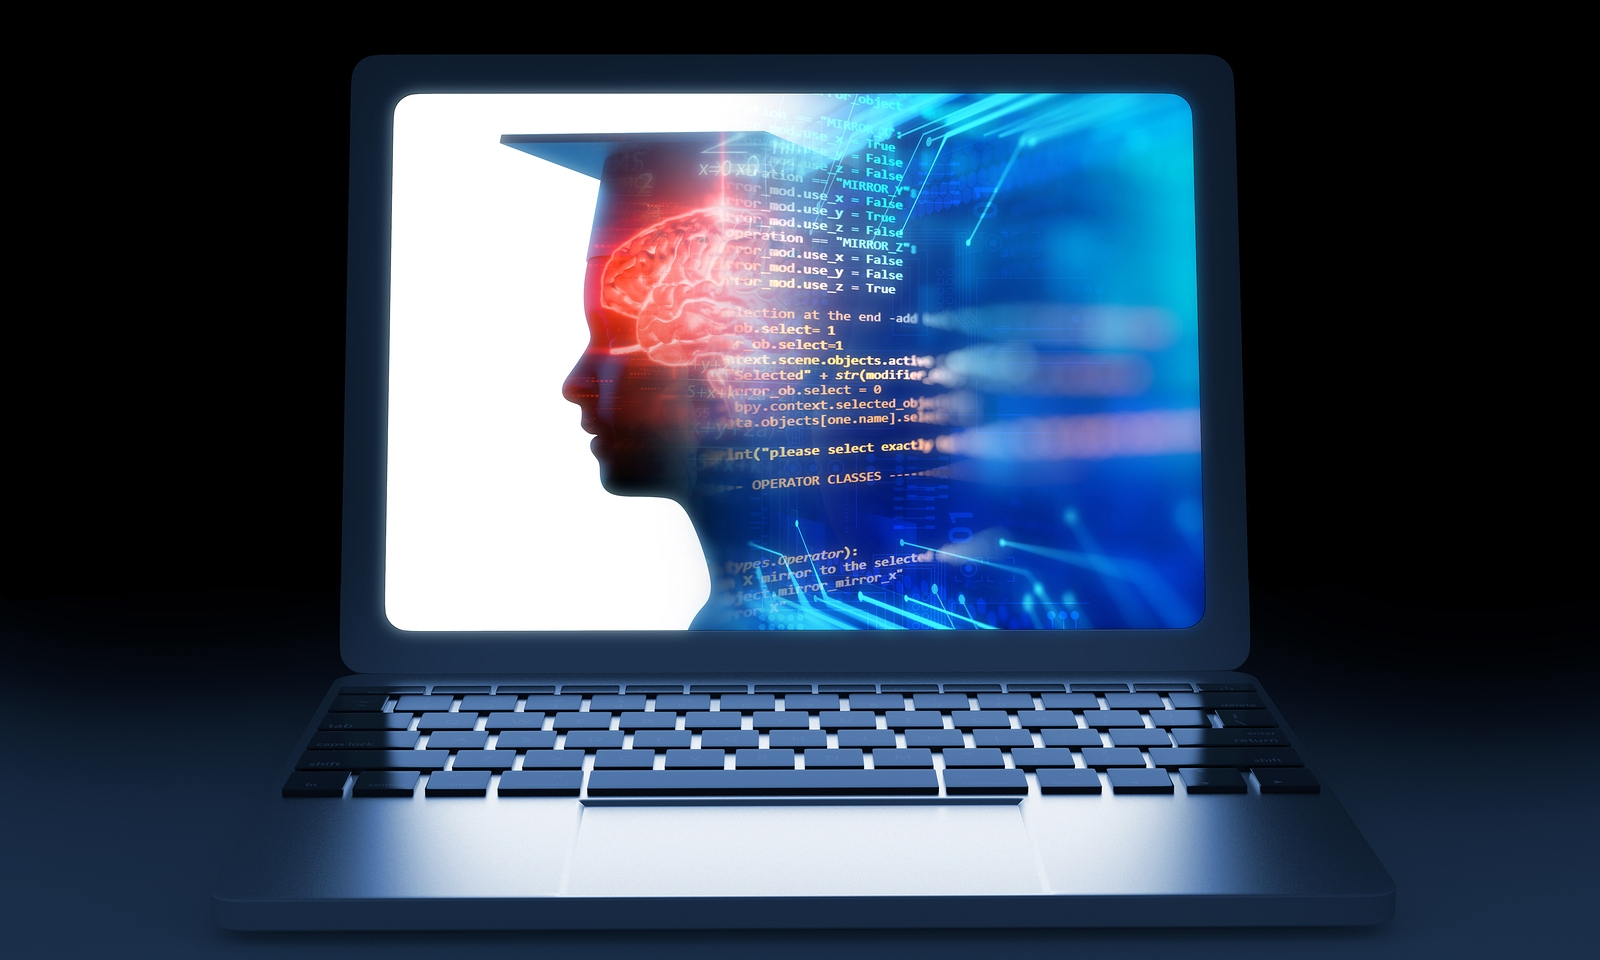 Coursera added six new courses developed by some of the world's leading universities at affordable prices, on subjects like Computer Science and Public Health. - Photo:Bigstock.com